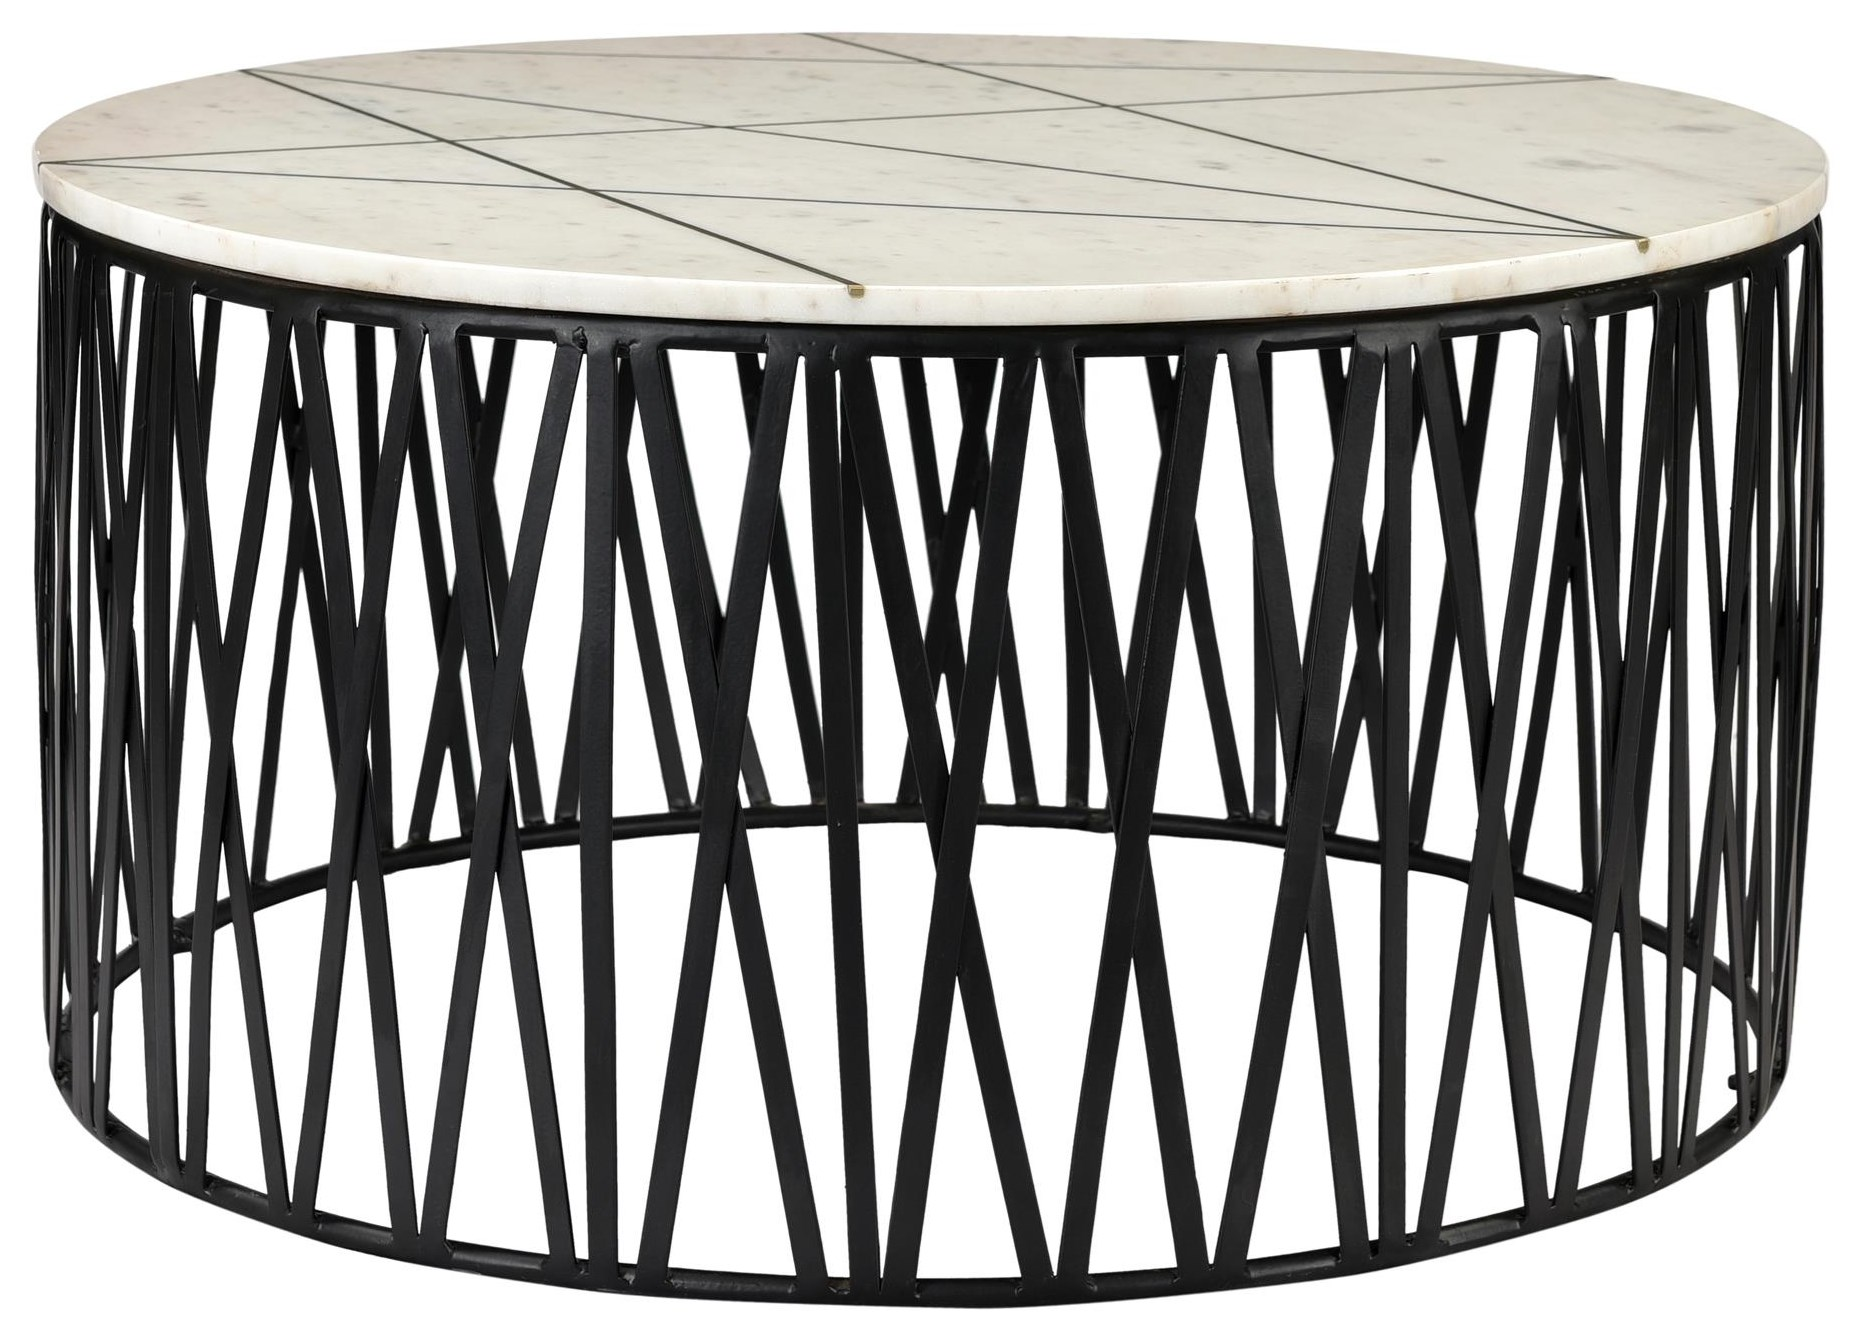 Calcutta Coffee Table at Bennett's Furniture and Mattresses